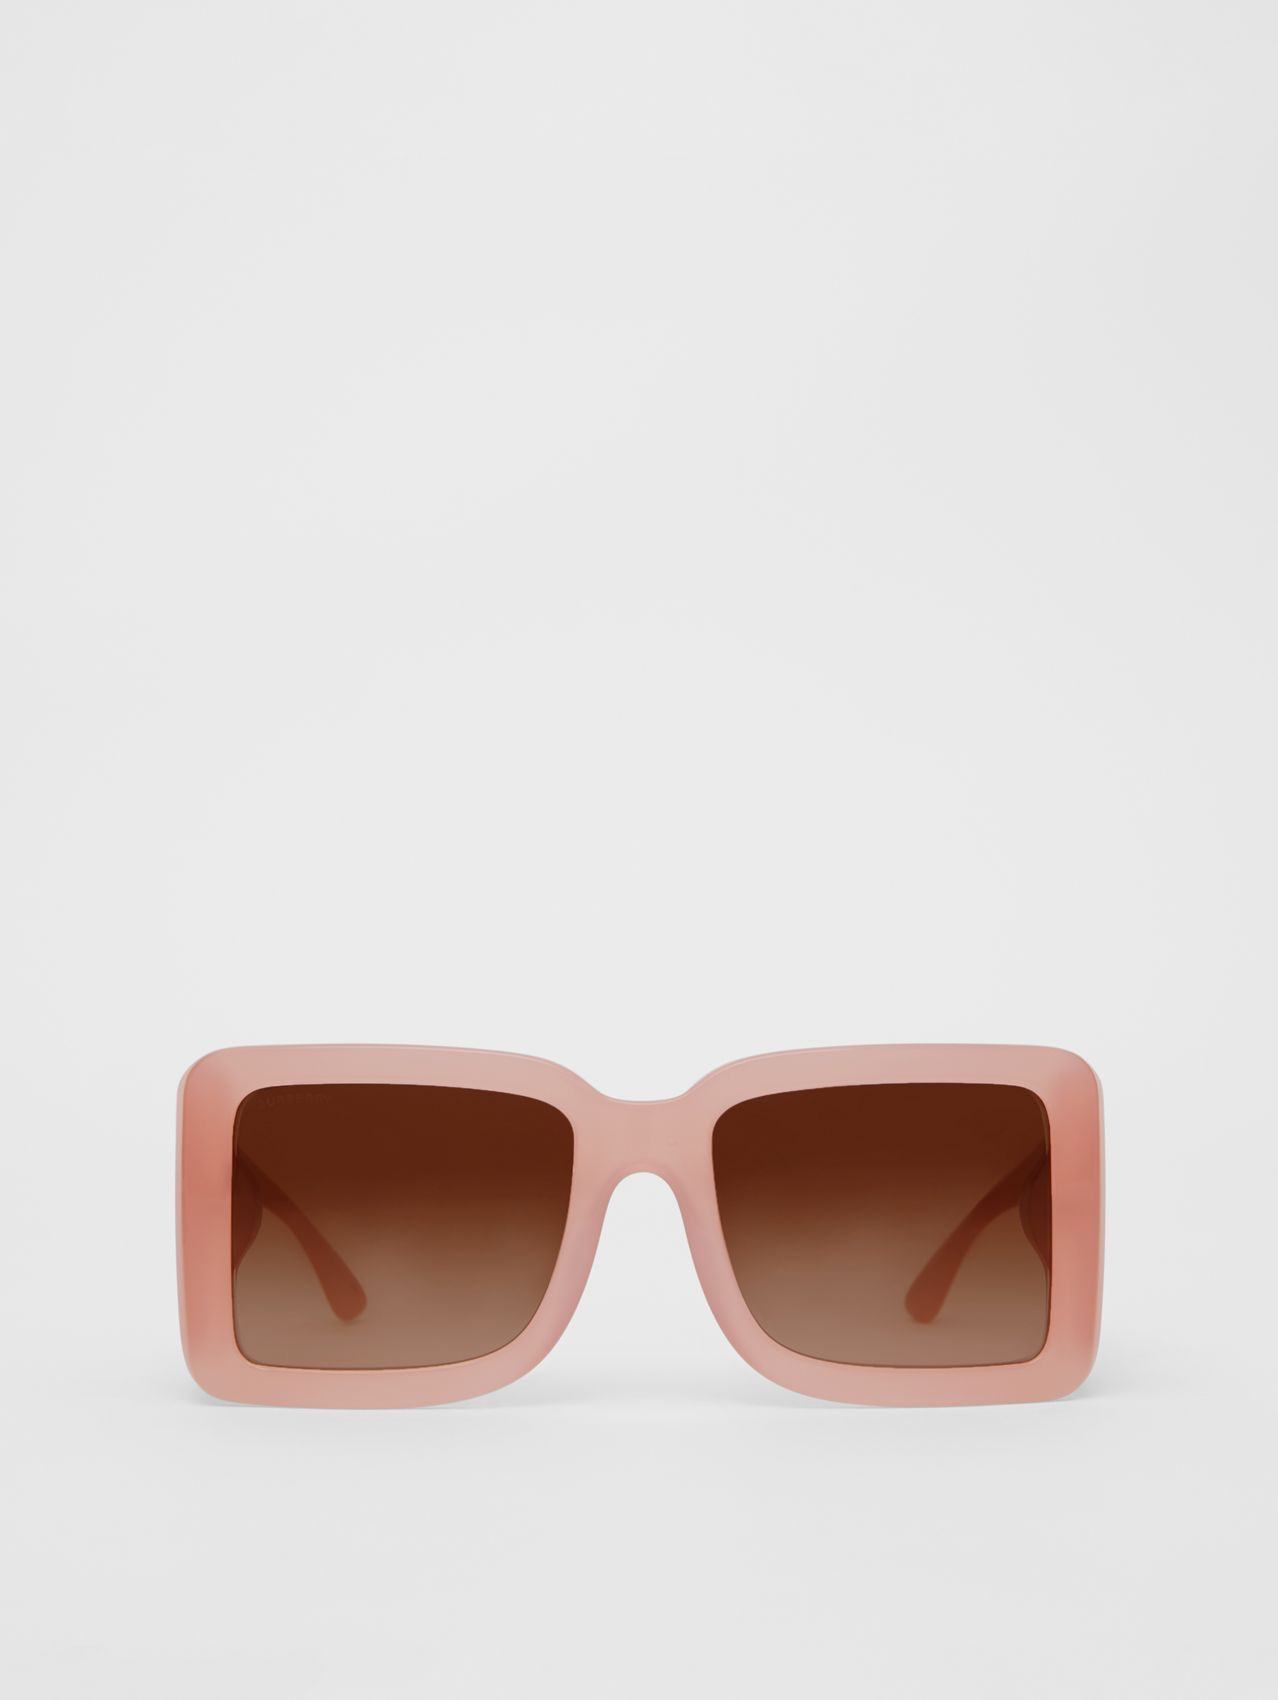 B Motif Square Frame Sunglasses in Pink